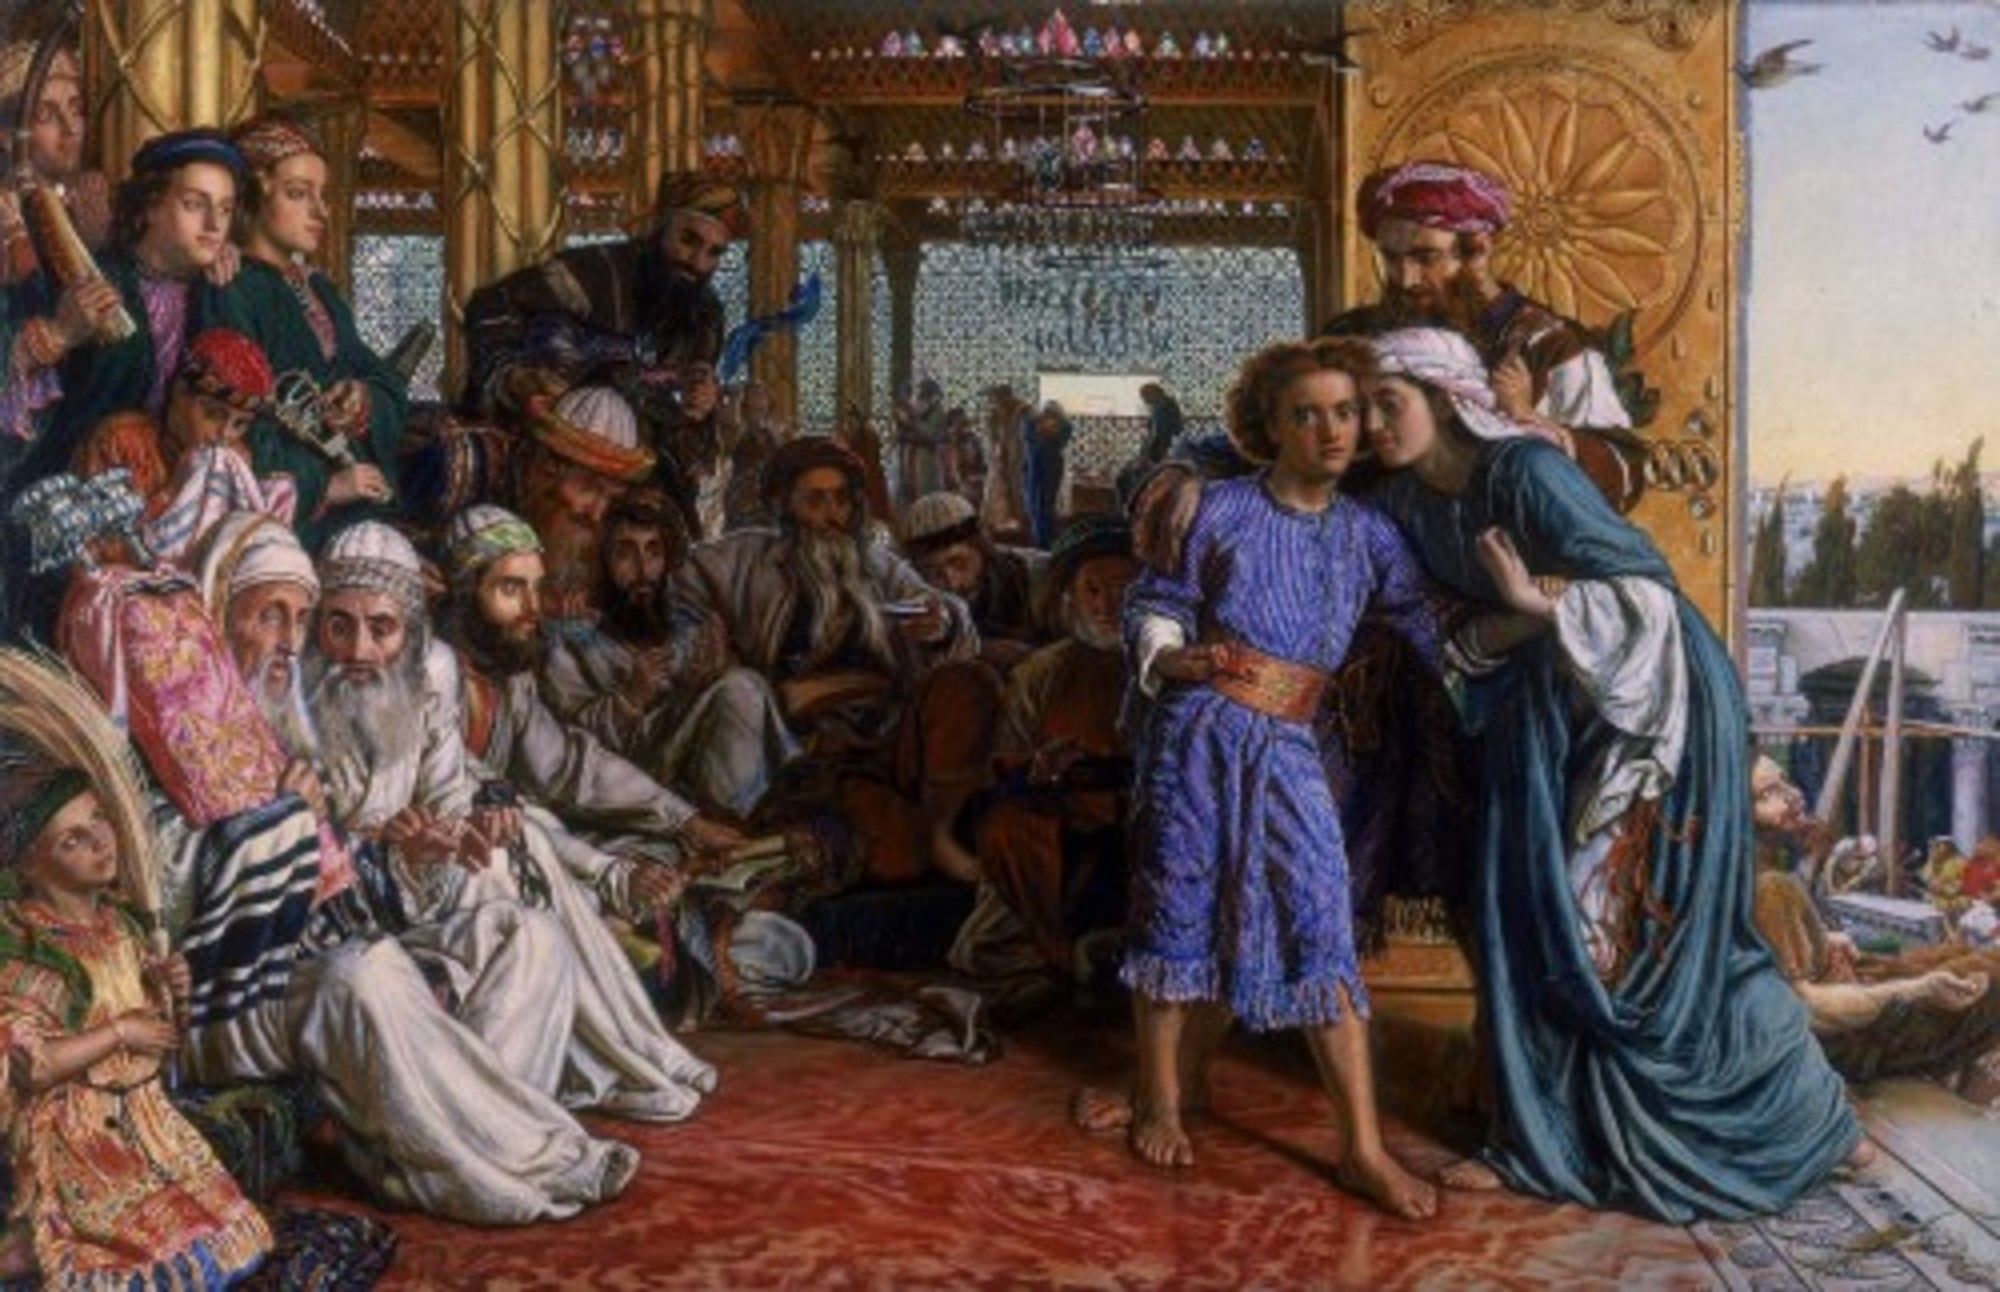 William-Holman-Hunt---The-Finding-of-the-Saviour-in-the-Temple.jpg